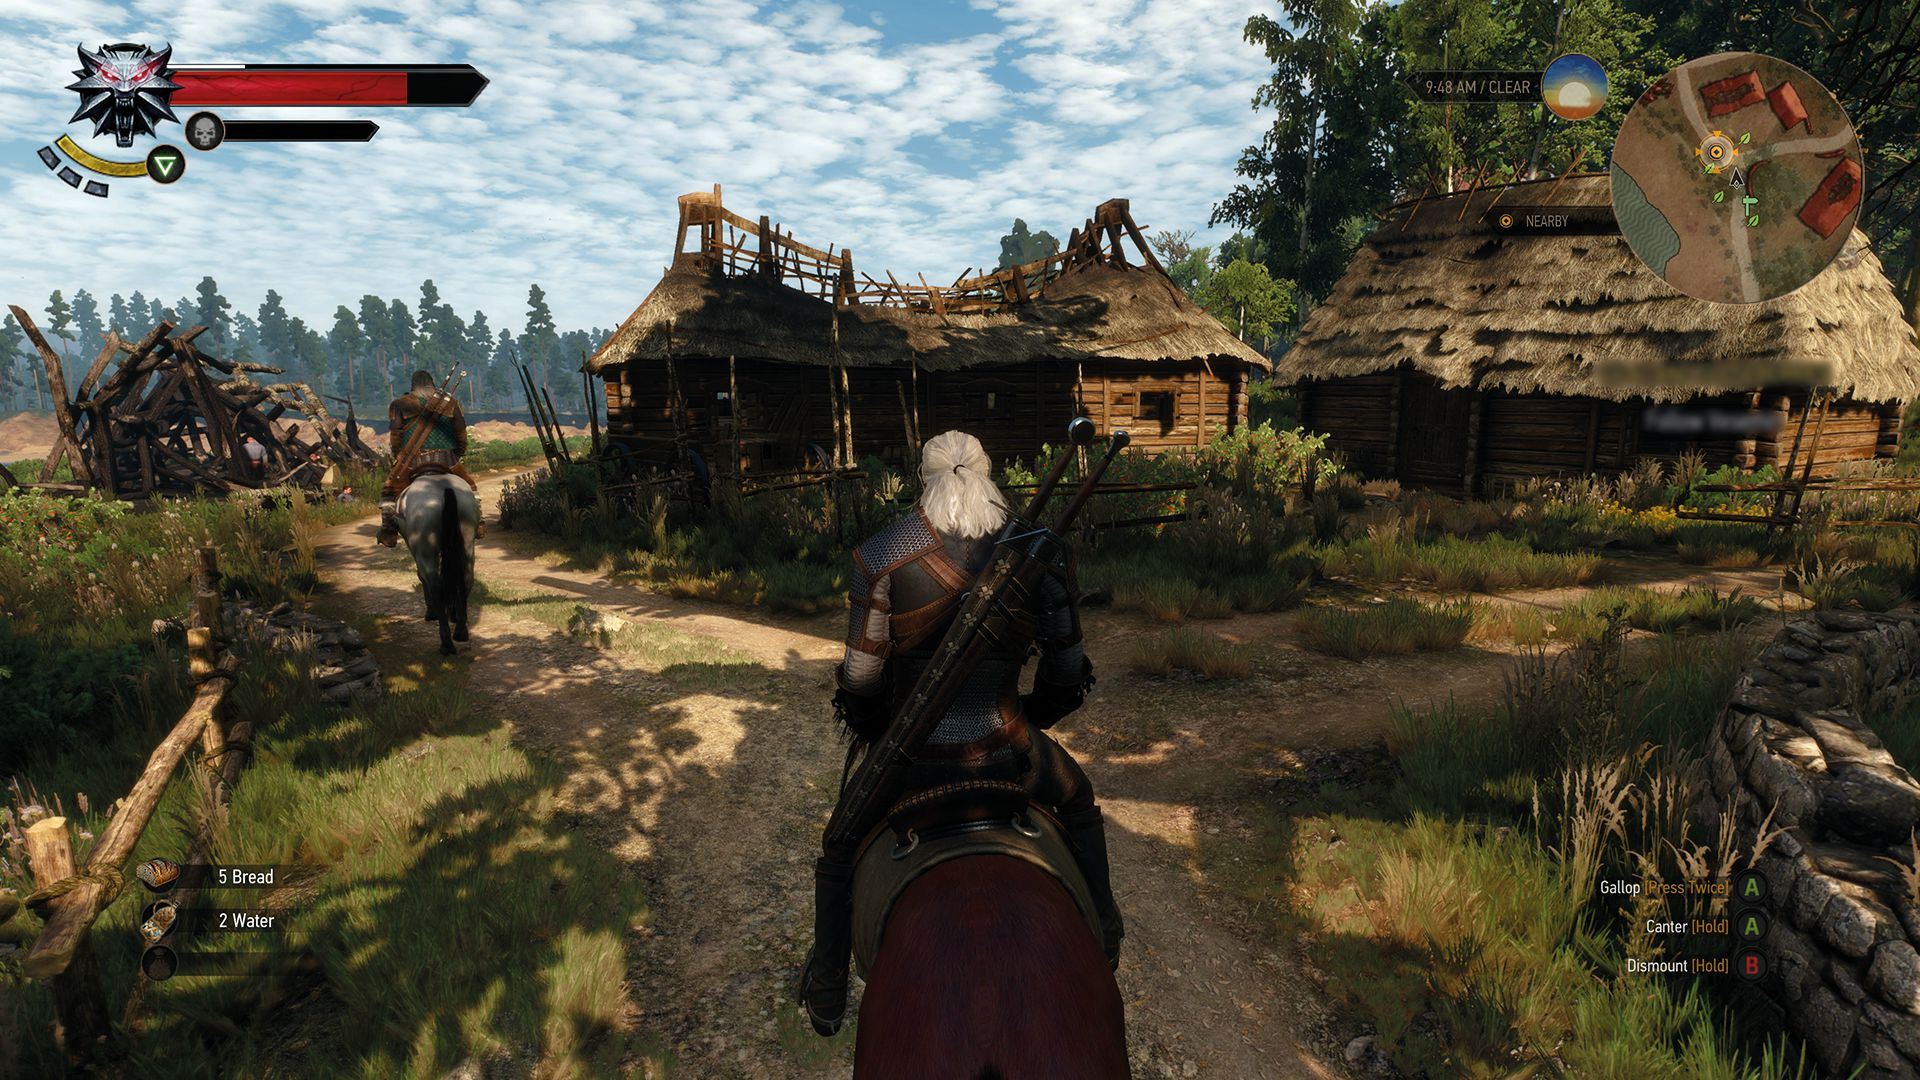 the_witcher_3_wild_hunt_vesemir_what_have_you_been_feeding_your_horse_im_gonna_hang_back_here_till_the_air_clears_1430900929